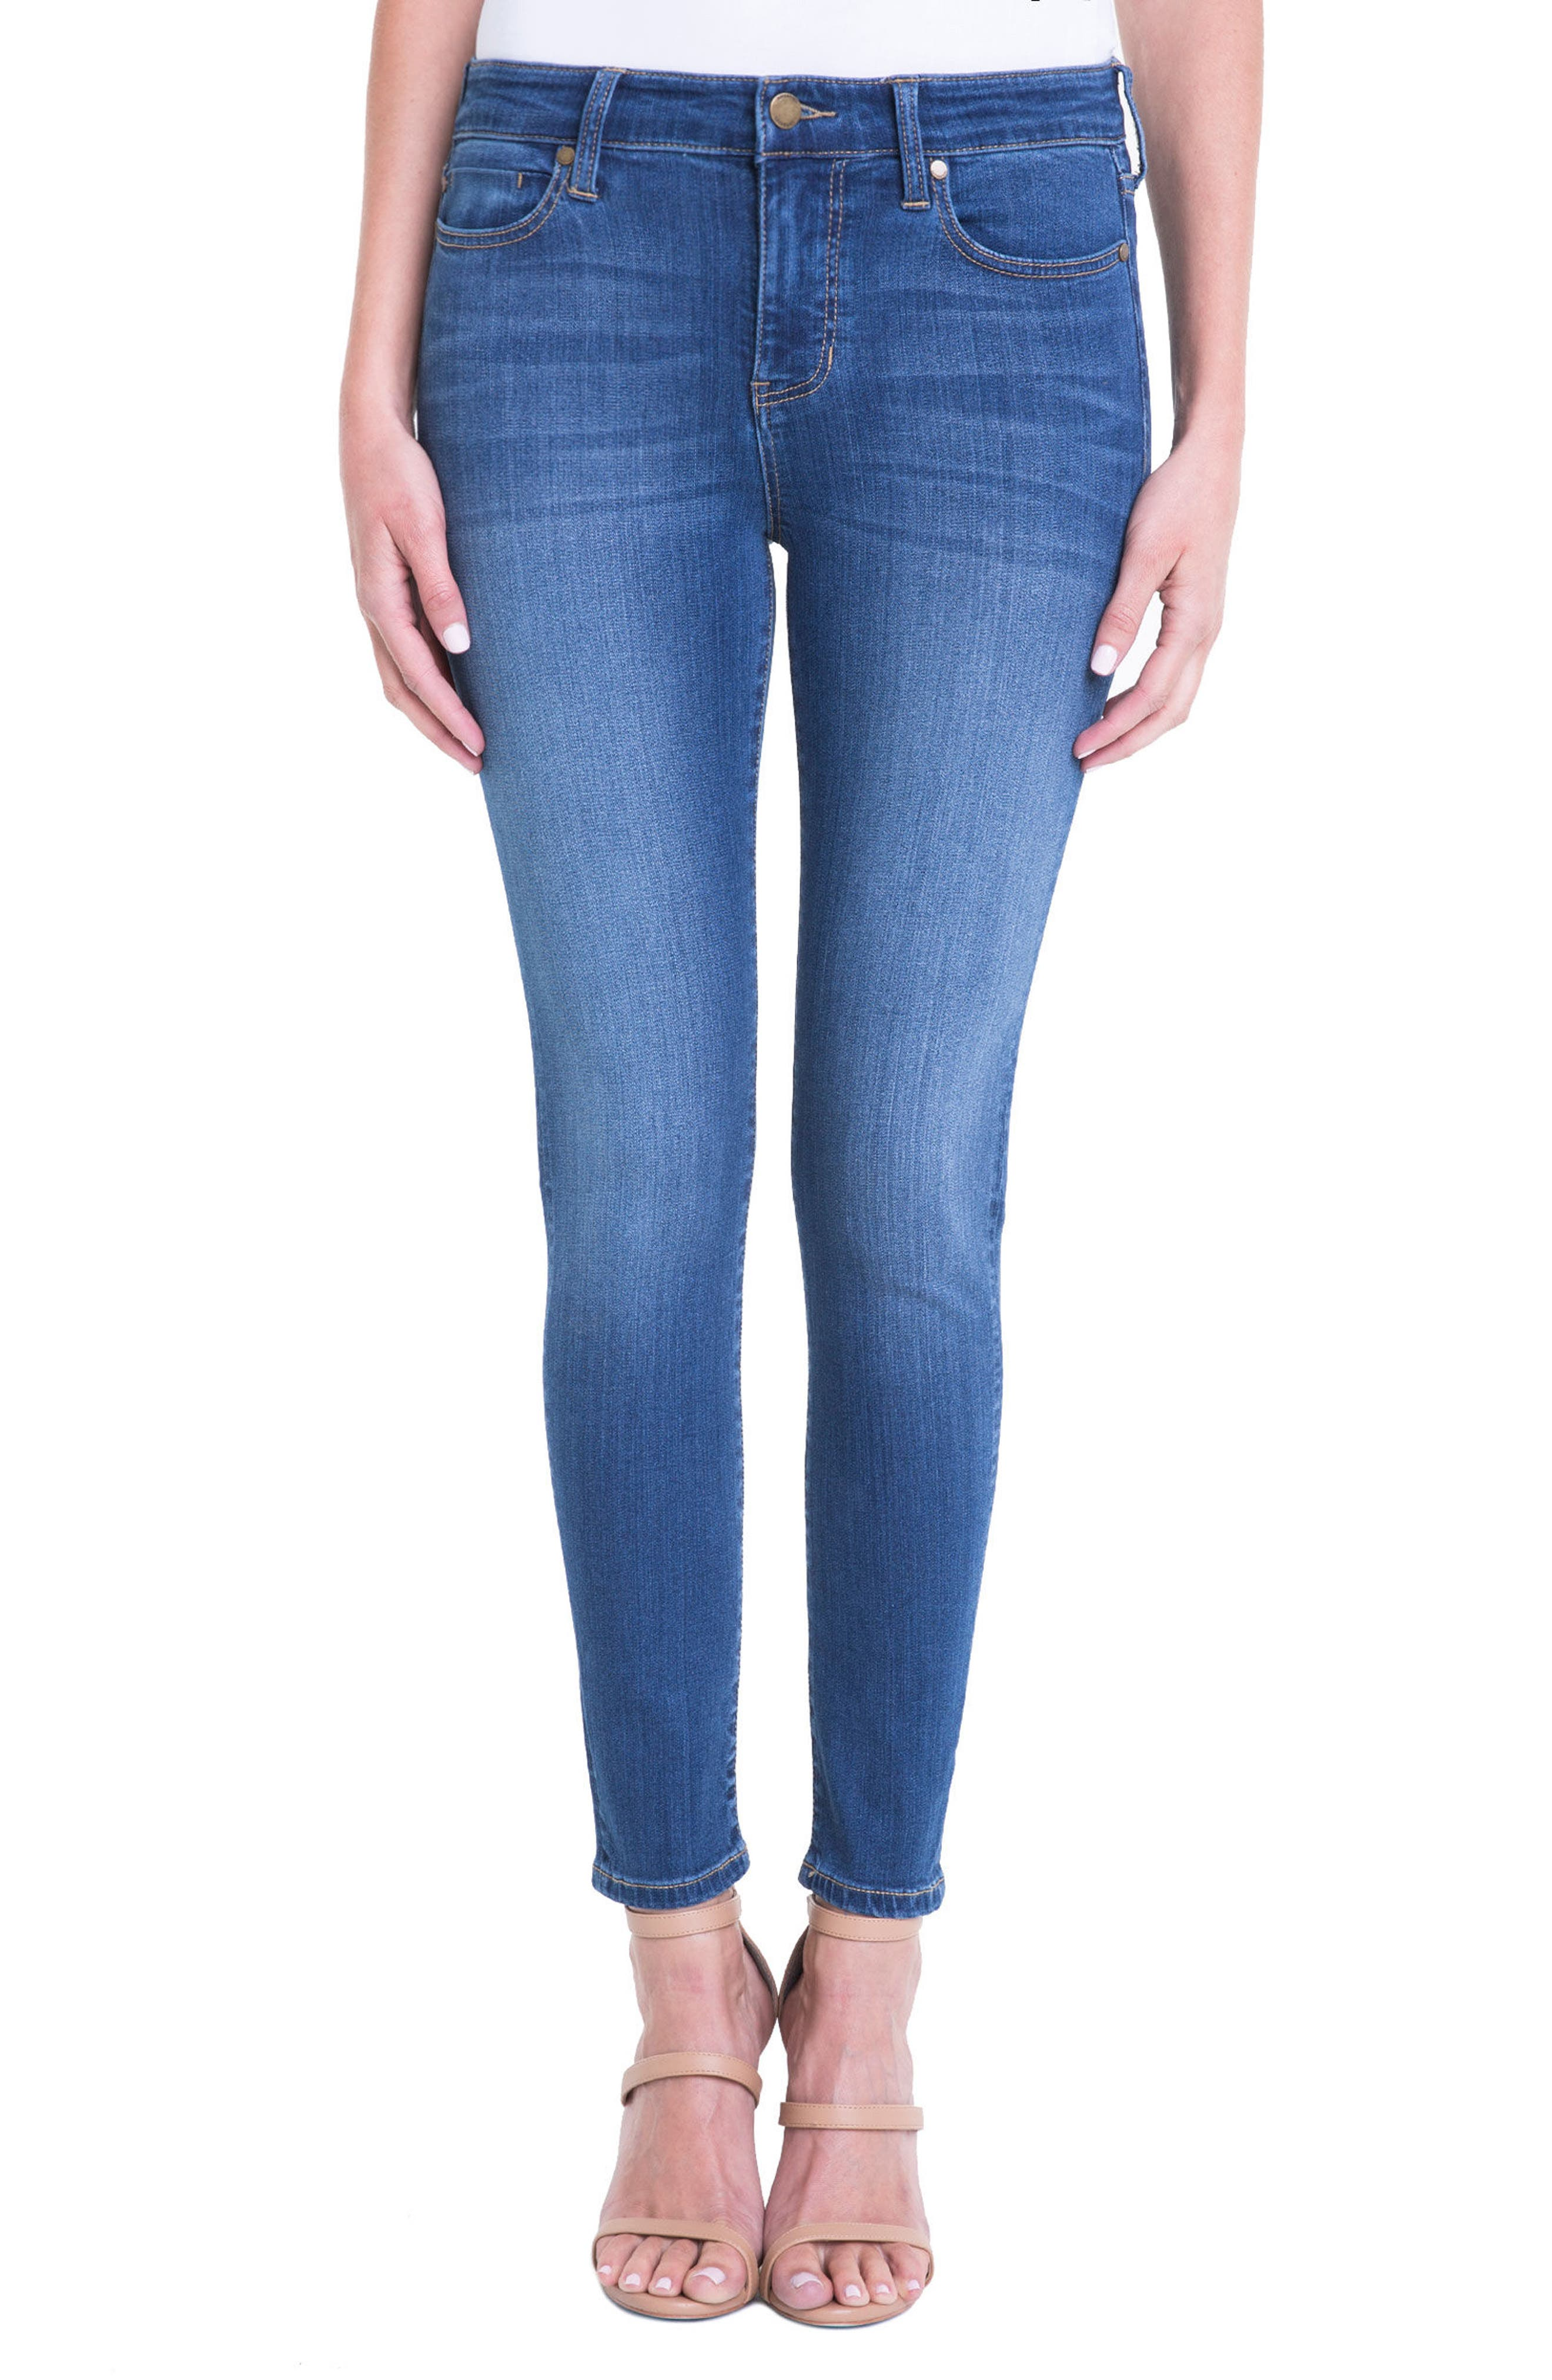 Liverpool Jeans Company High Rise Stretch Ankle Skinny Jeans (Albury Wash)